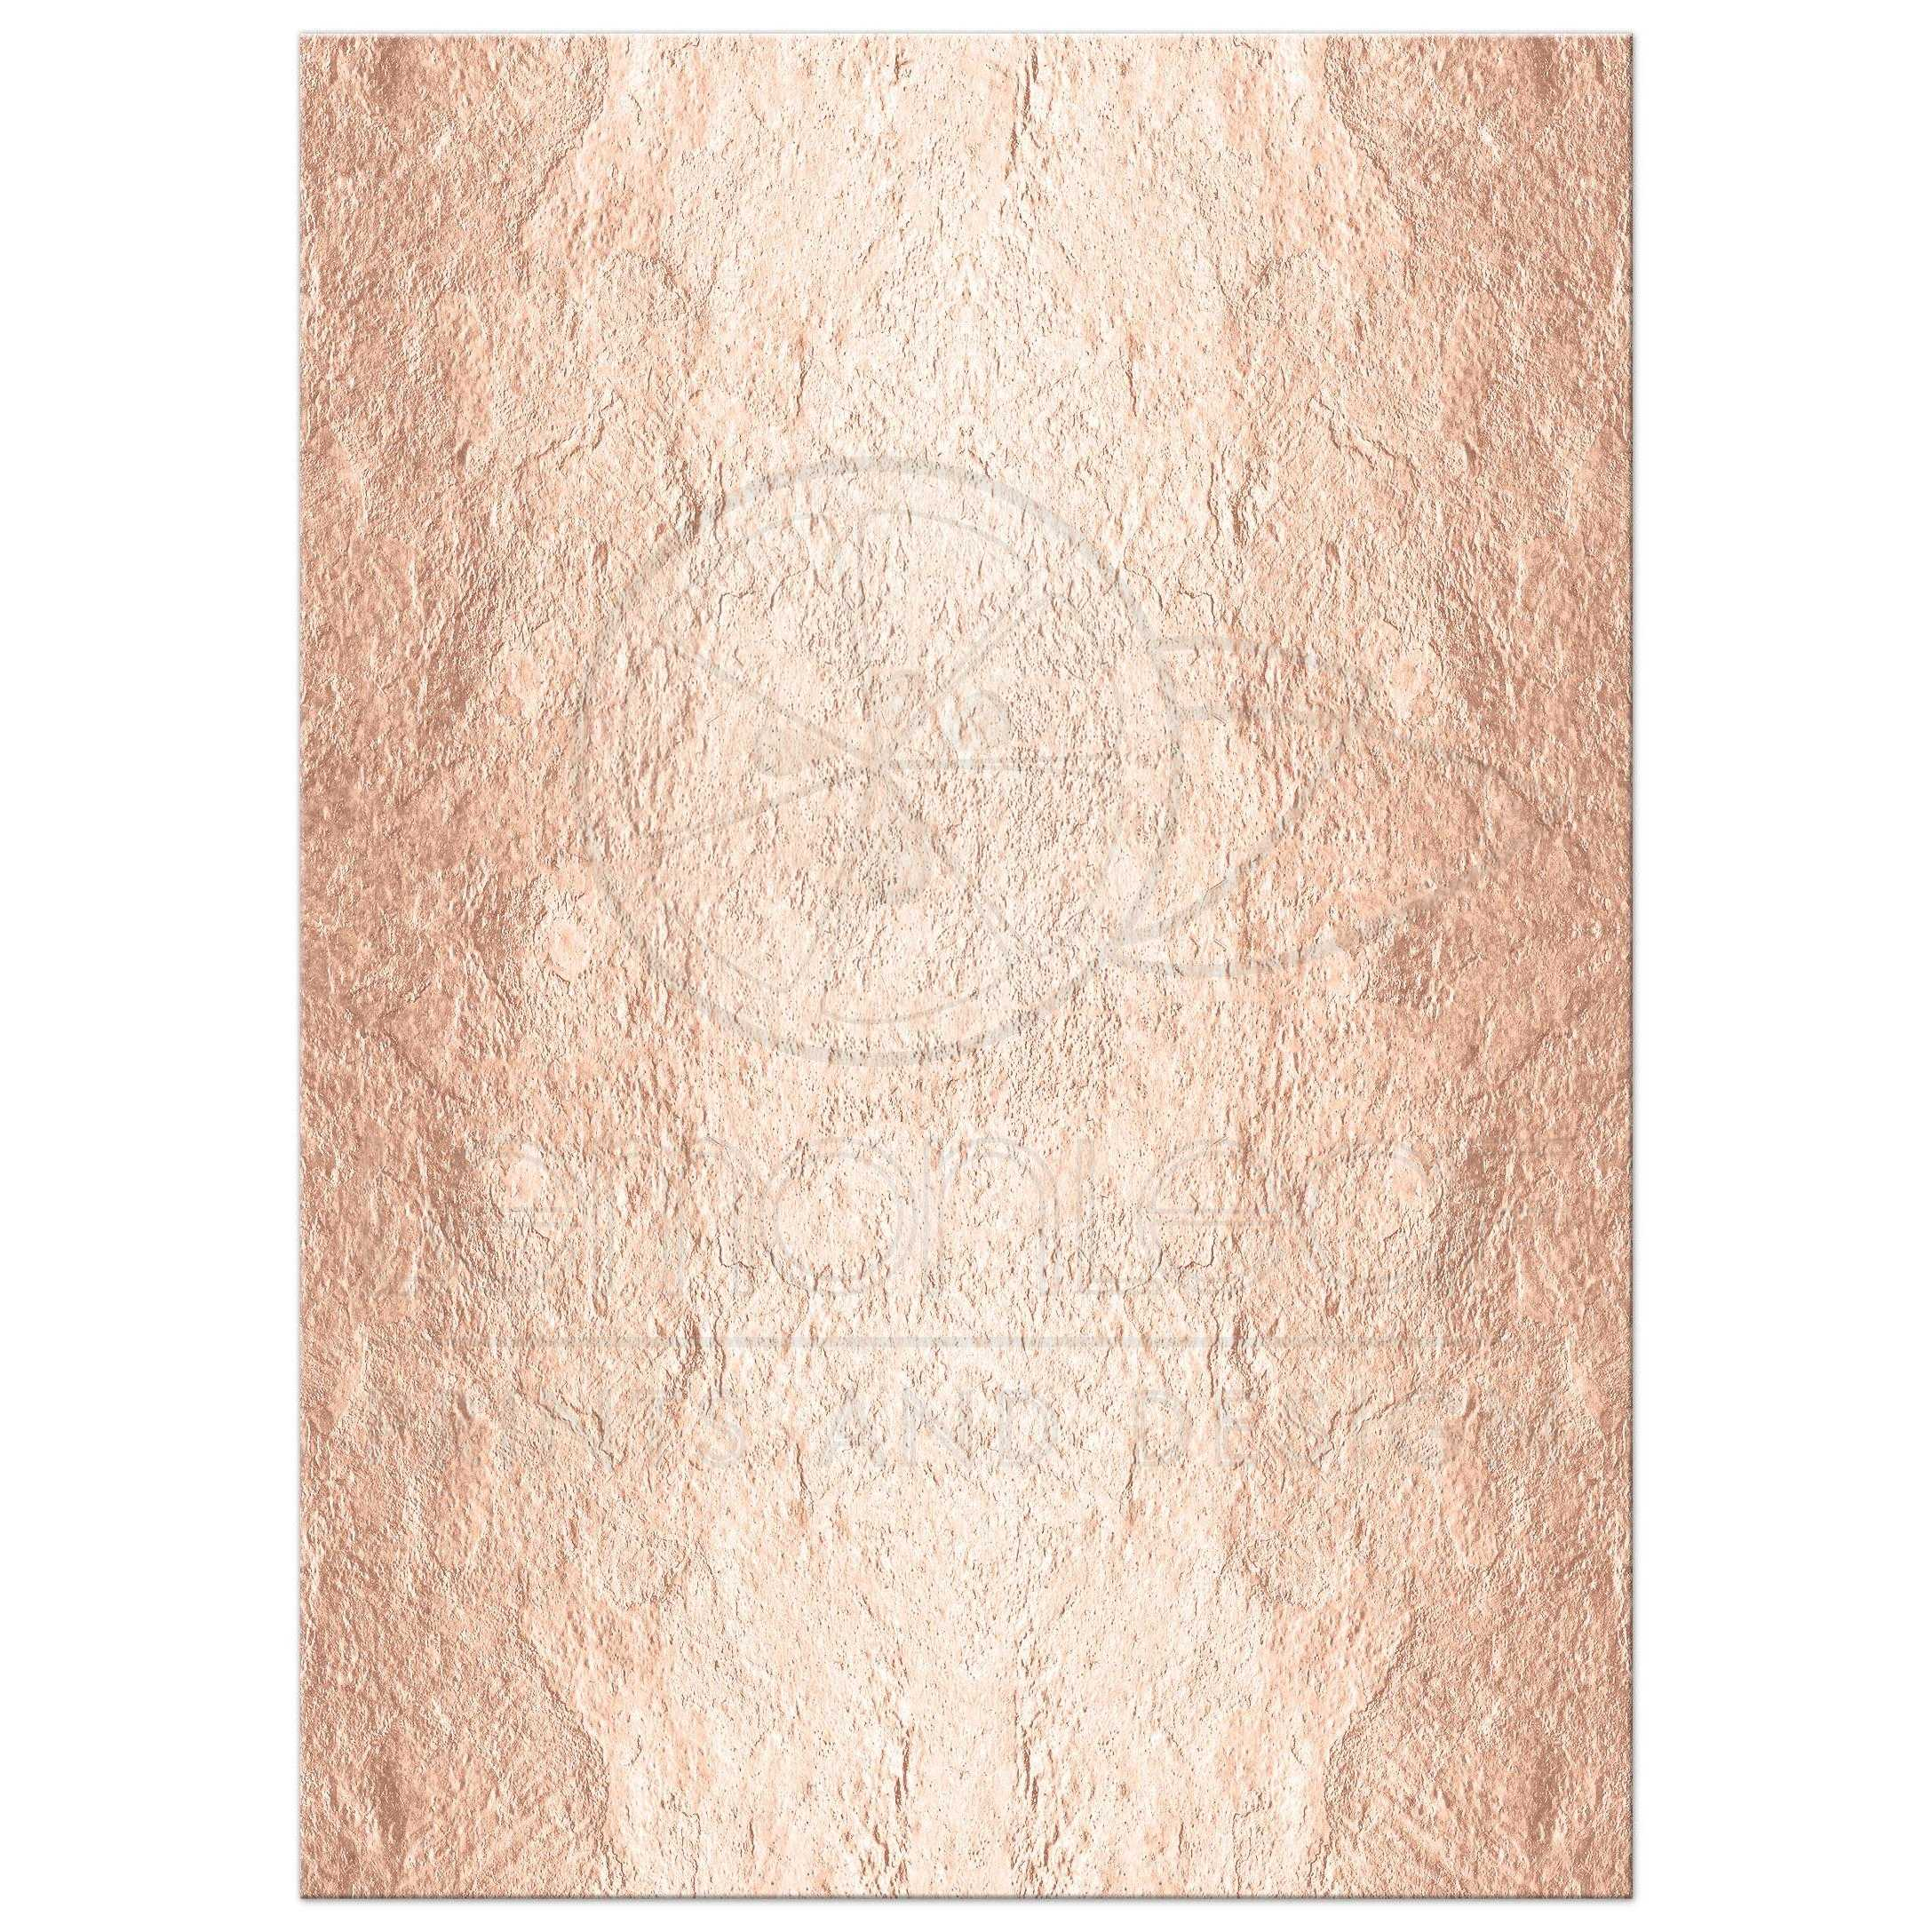 Burlap Invitations Wedding is good invitations layout